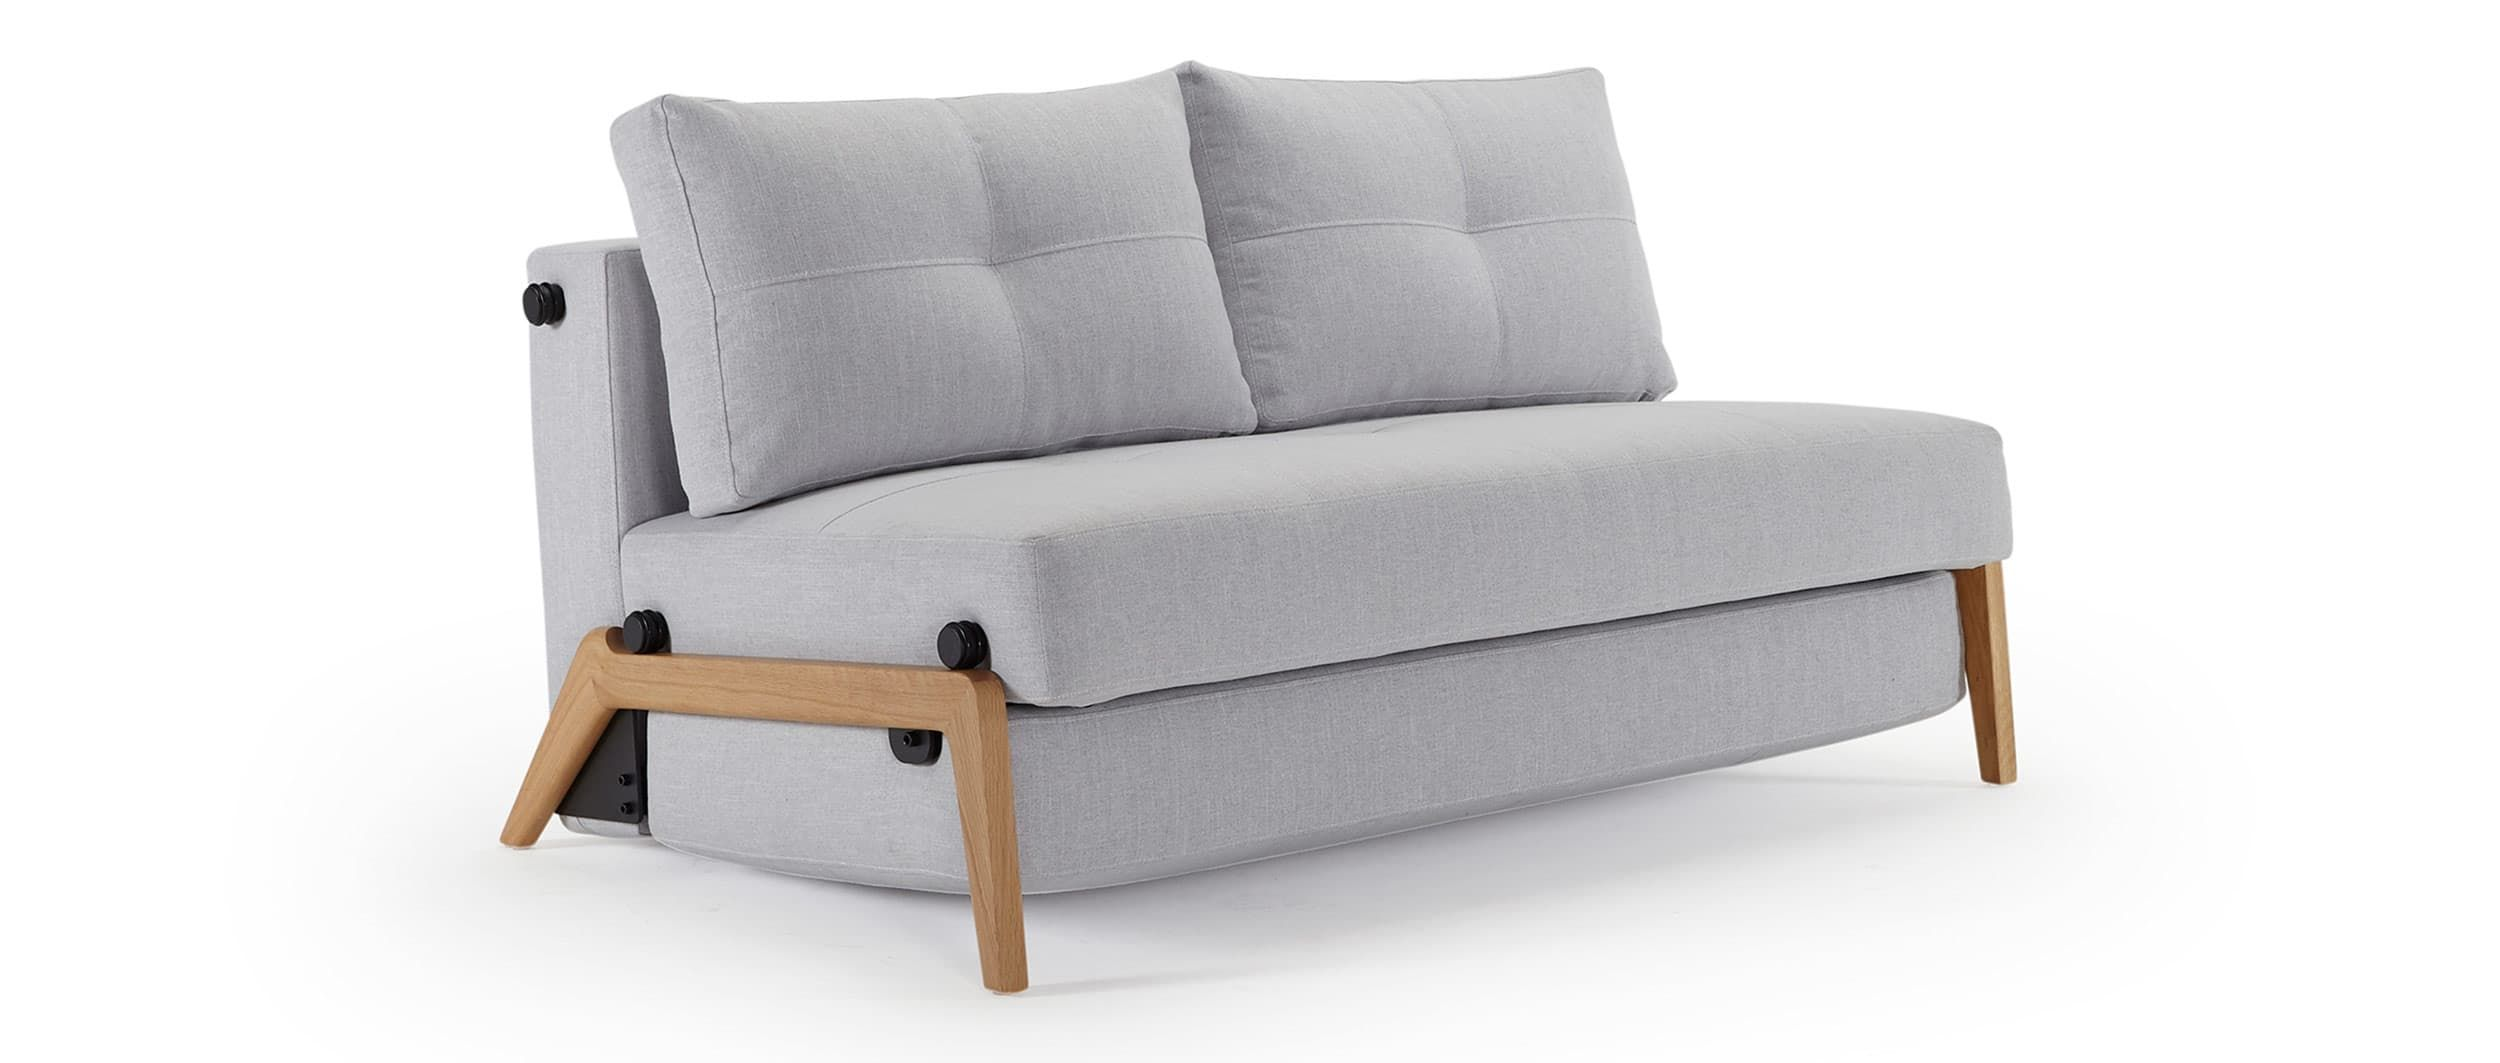 Schlafsofa Cubed 140 Holzfüße In 2019 Schlafcouch Sofa Outdoor